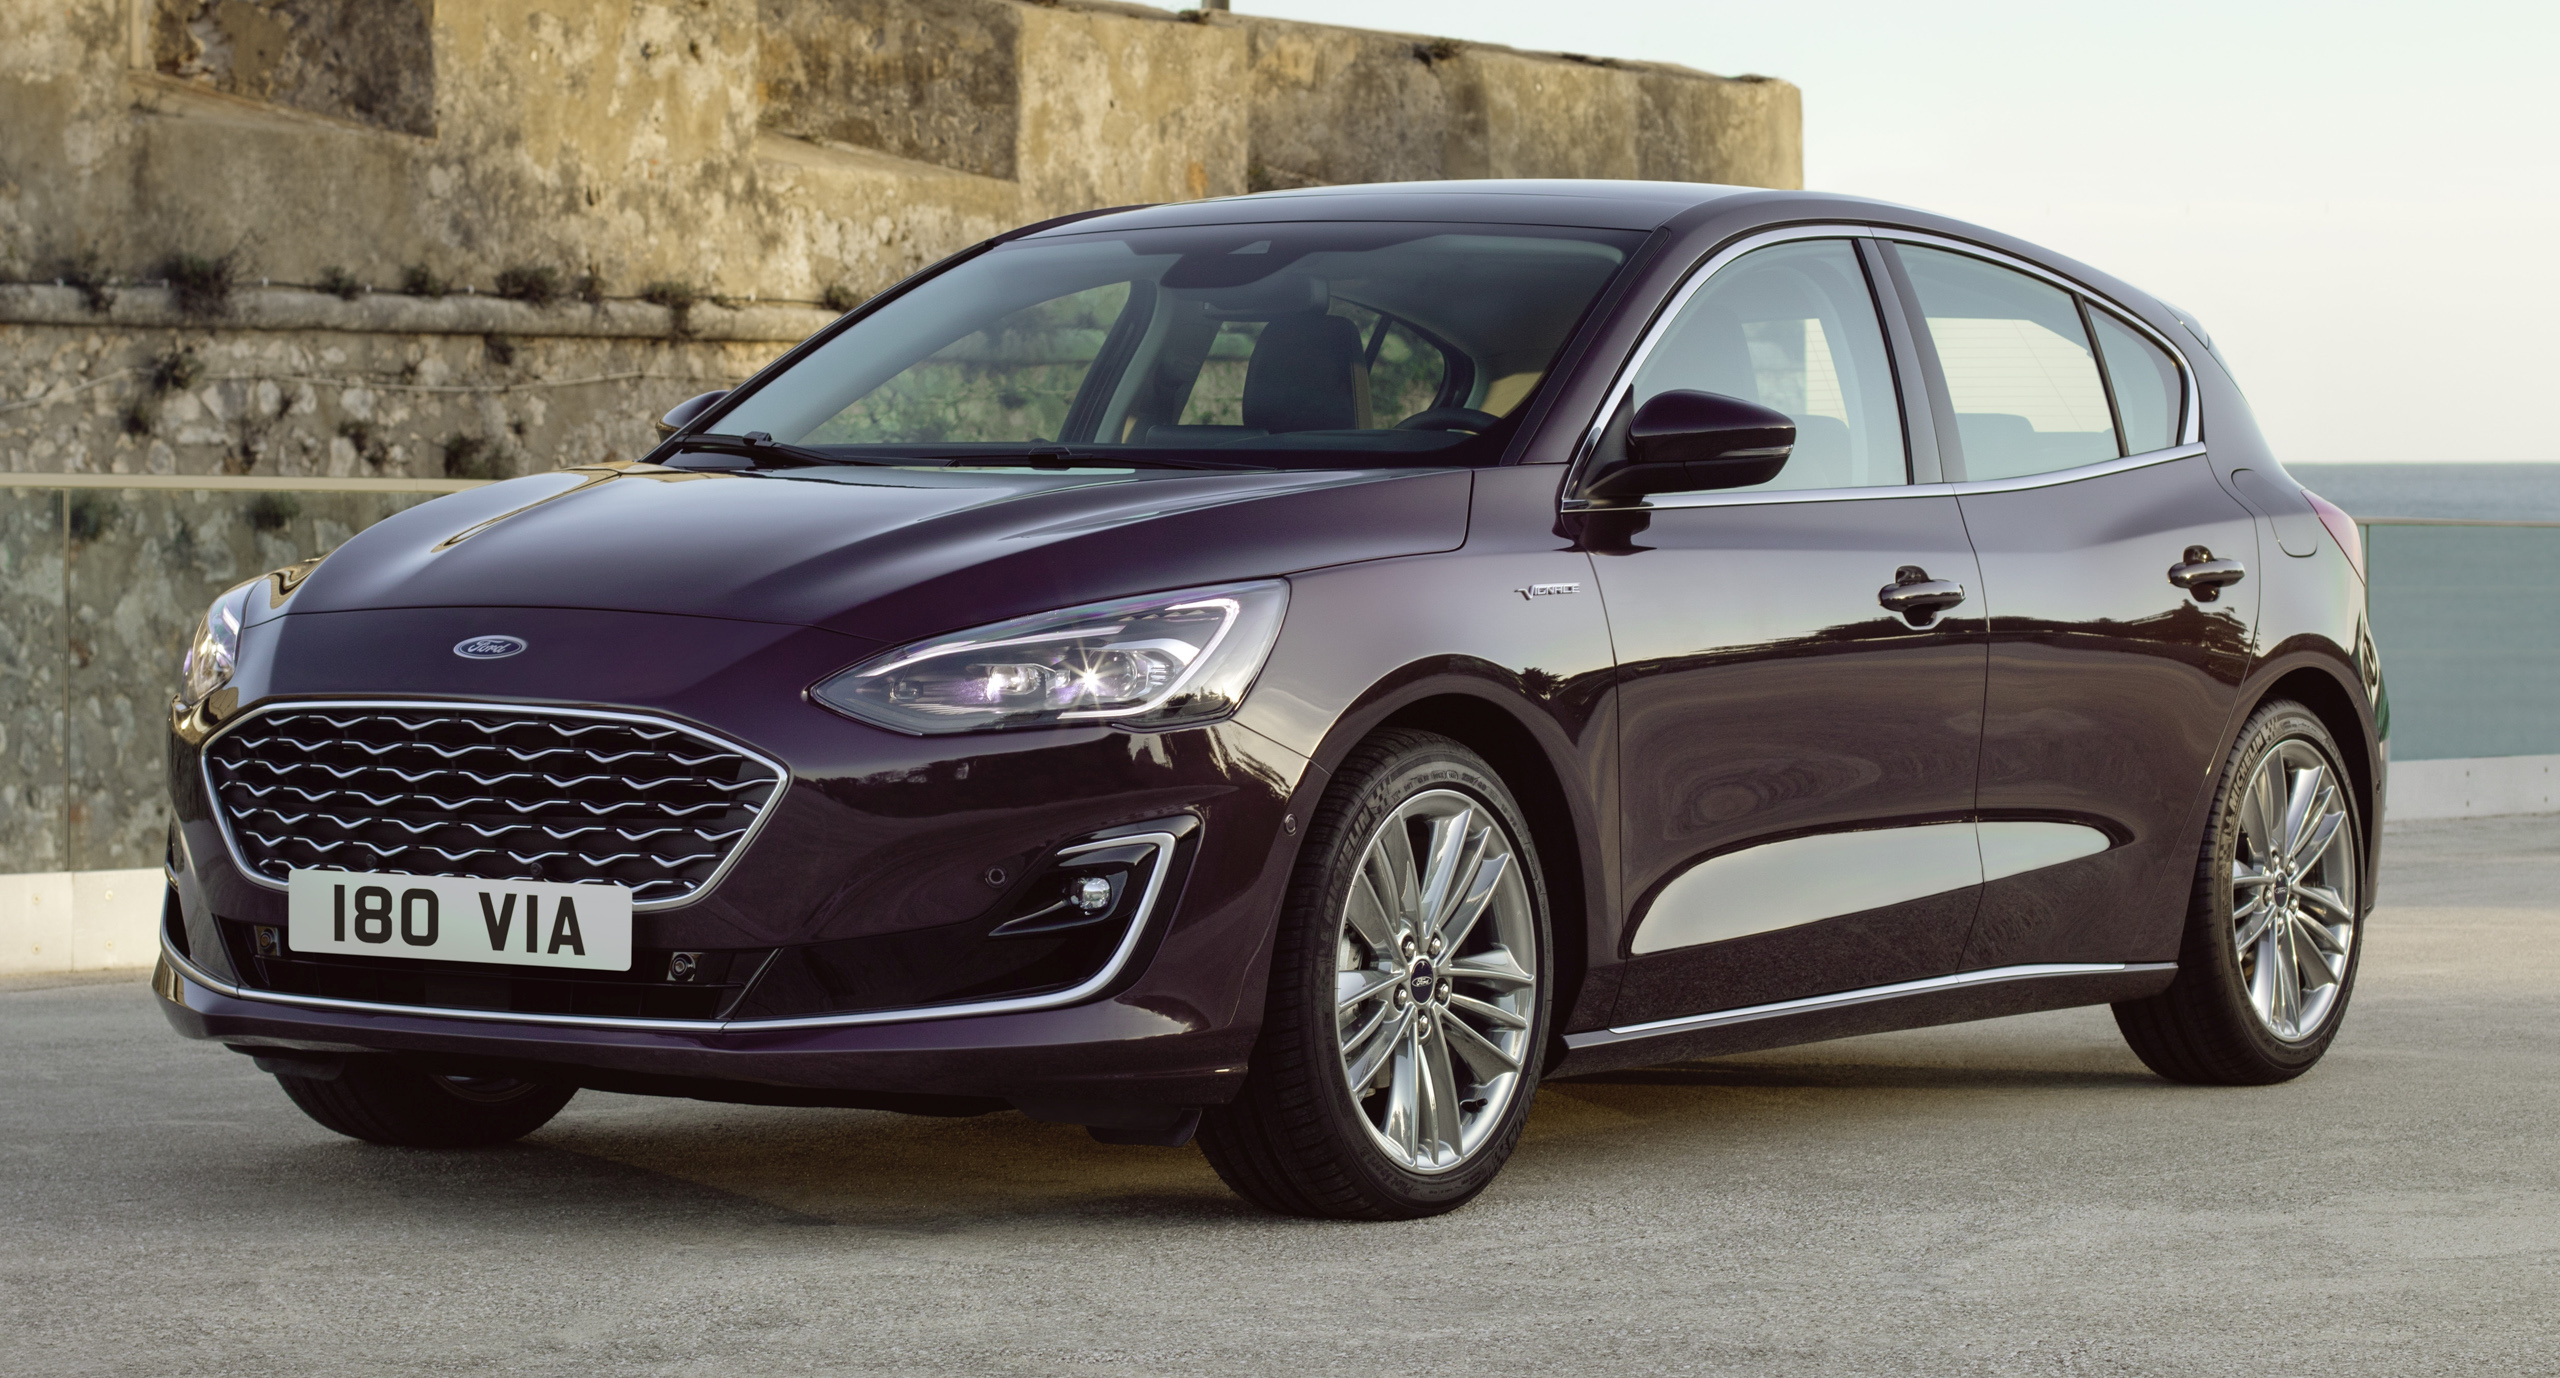 2019 ford focus mk4 ecoboost ecoblue ford 2018 focus vignale. Black Bedroom Furniture Sets. Home Design Ideas